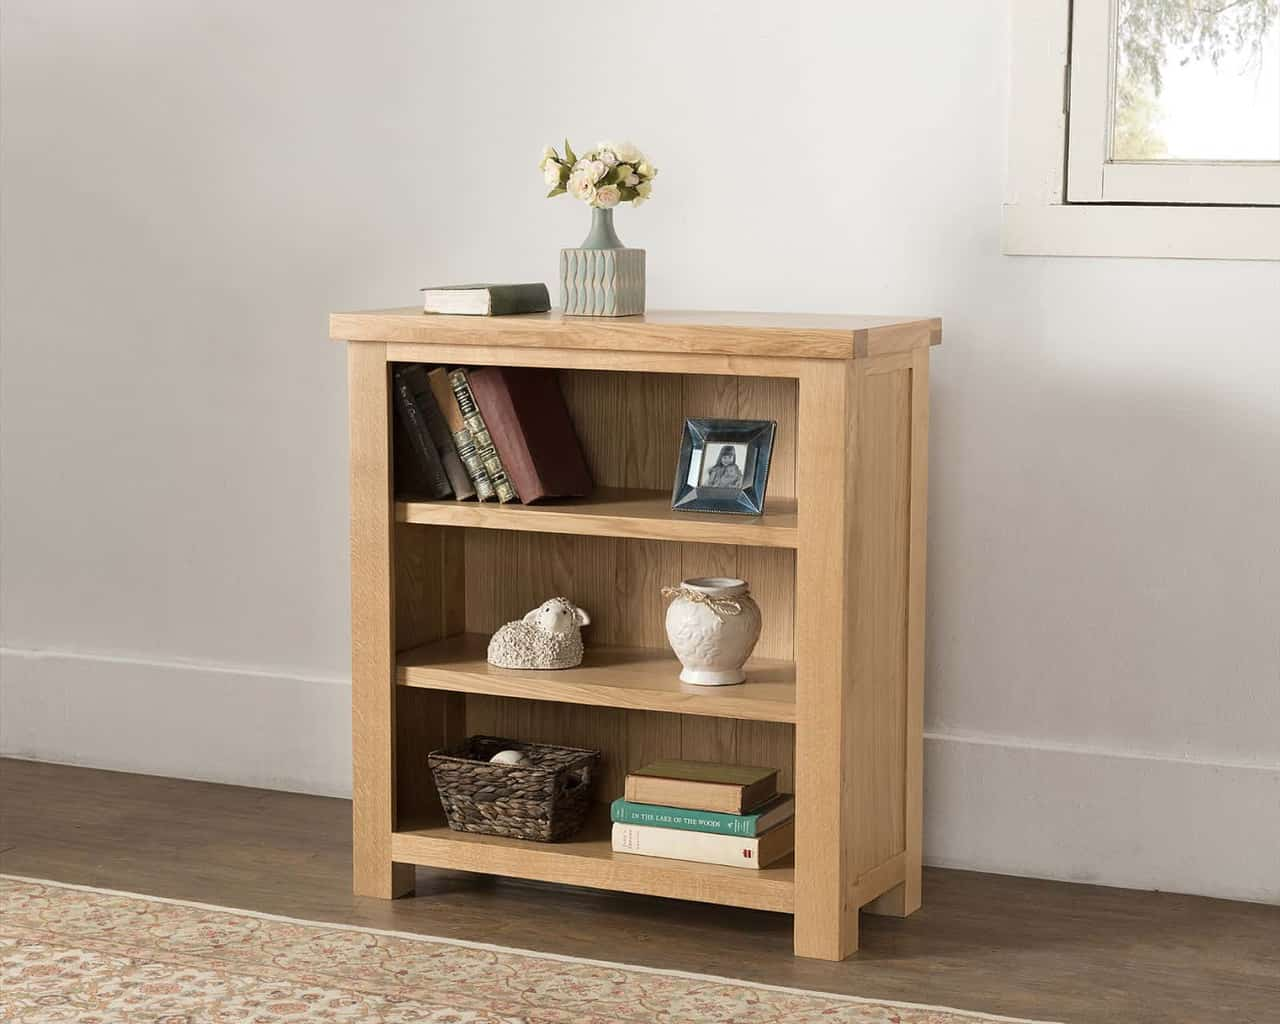 Valencia Solid Wood Chunky Oak Small Low Open Bookcase Display Unit